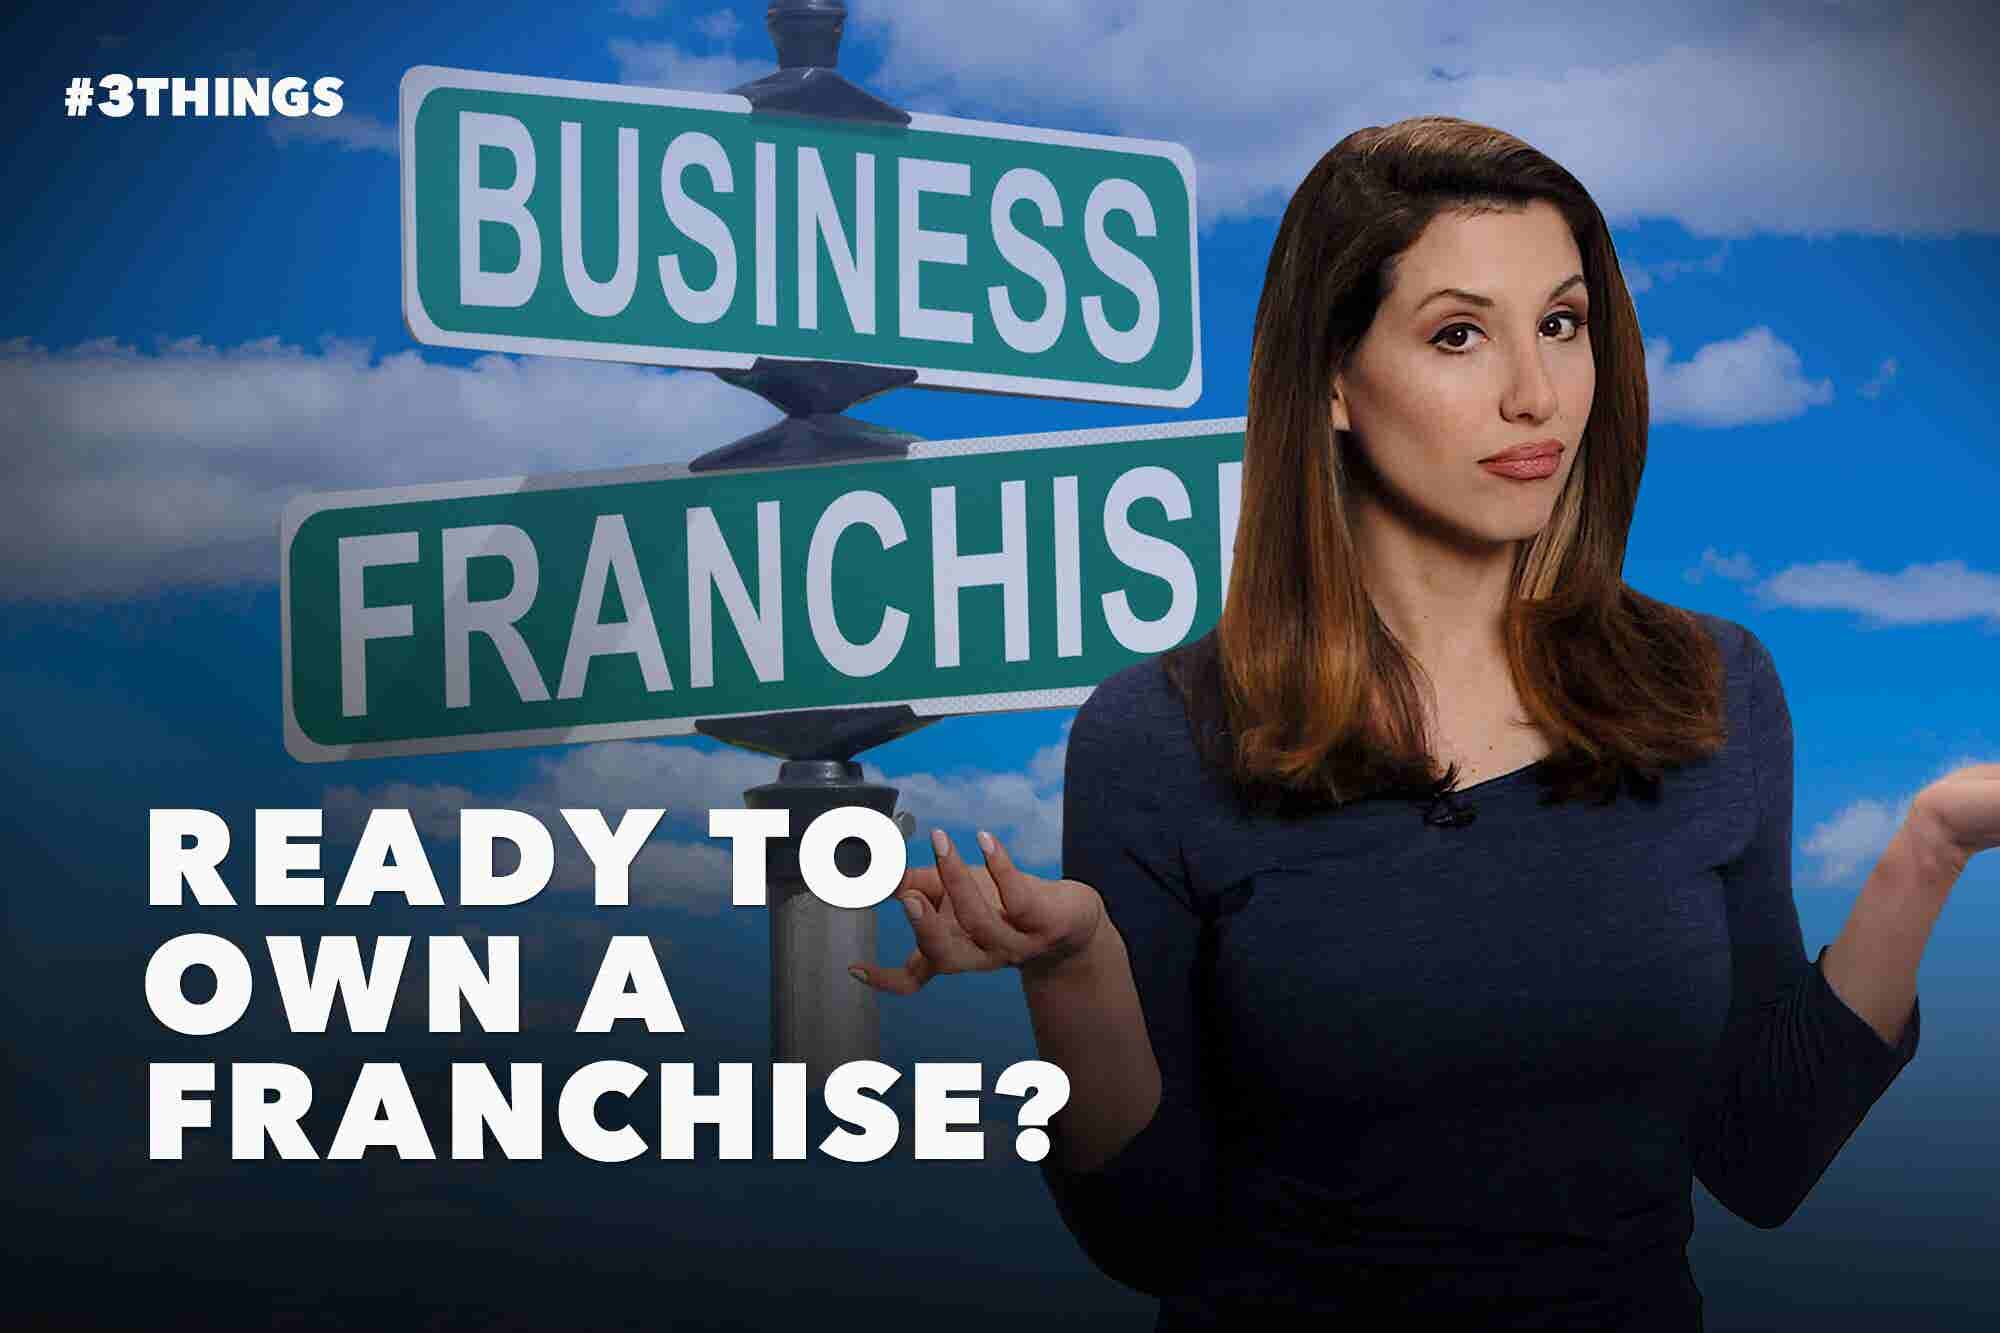 How to Buy an Existing Franchise (60-Second Video)